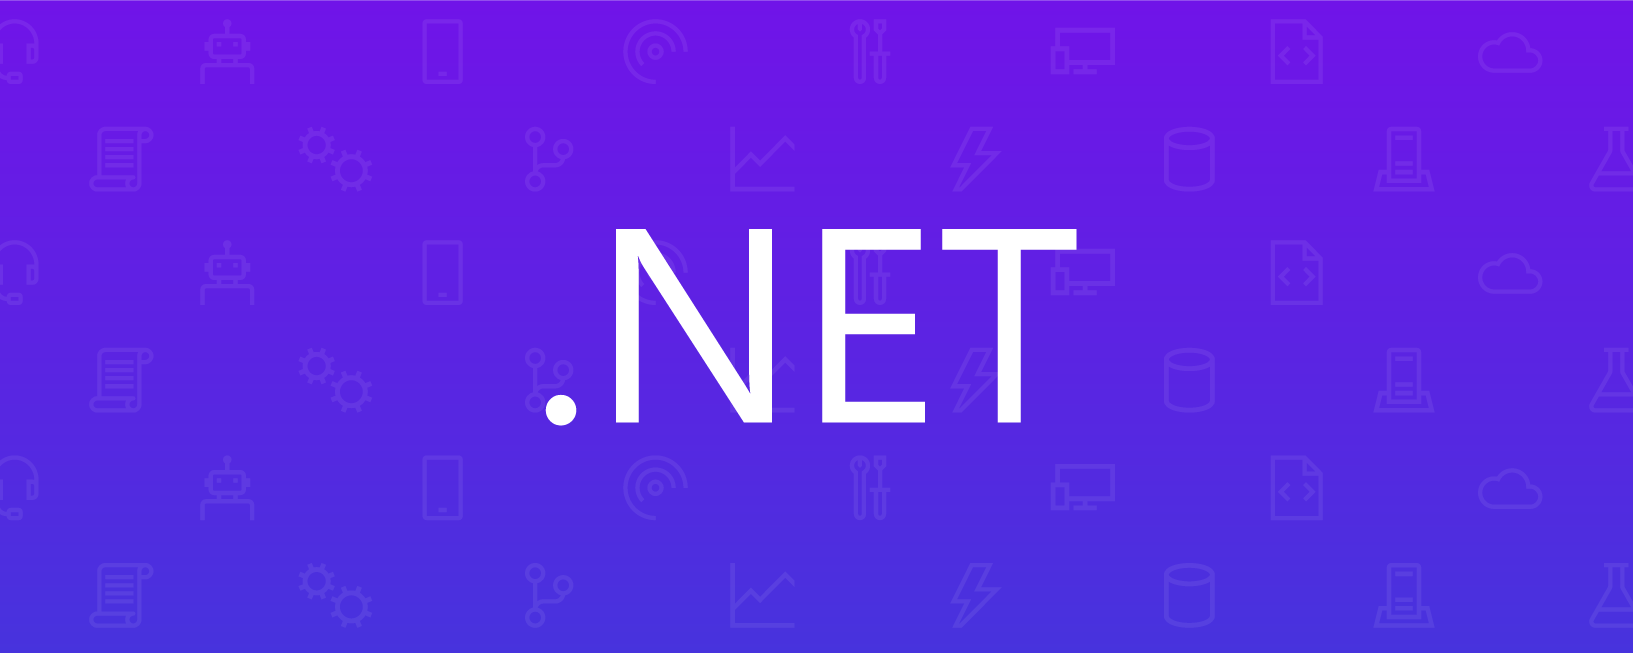 WHAT IS .NET